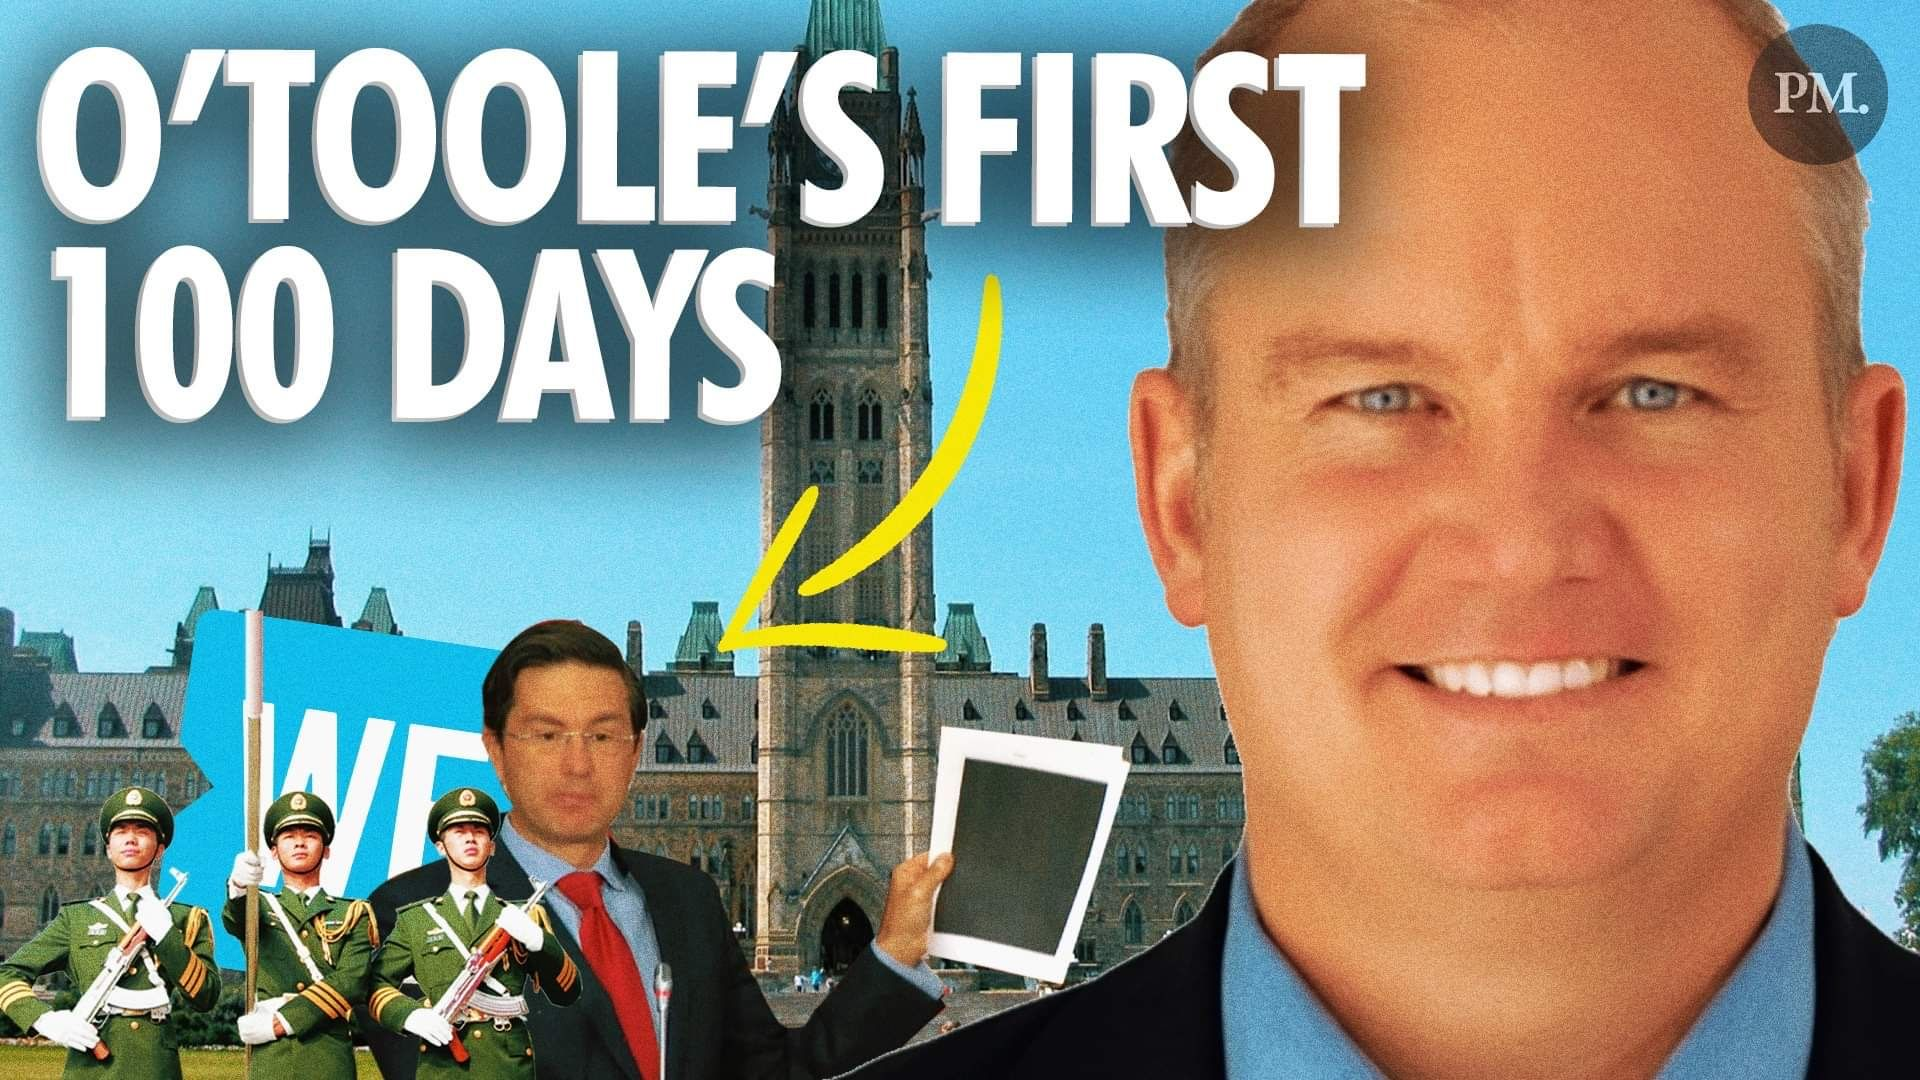 Erin O'Toole's first 100 days as Conservative leader, success or failure?